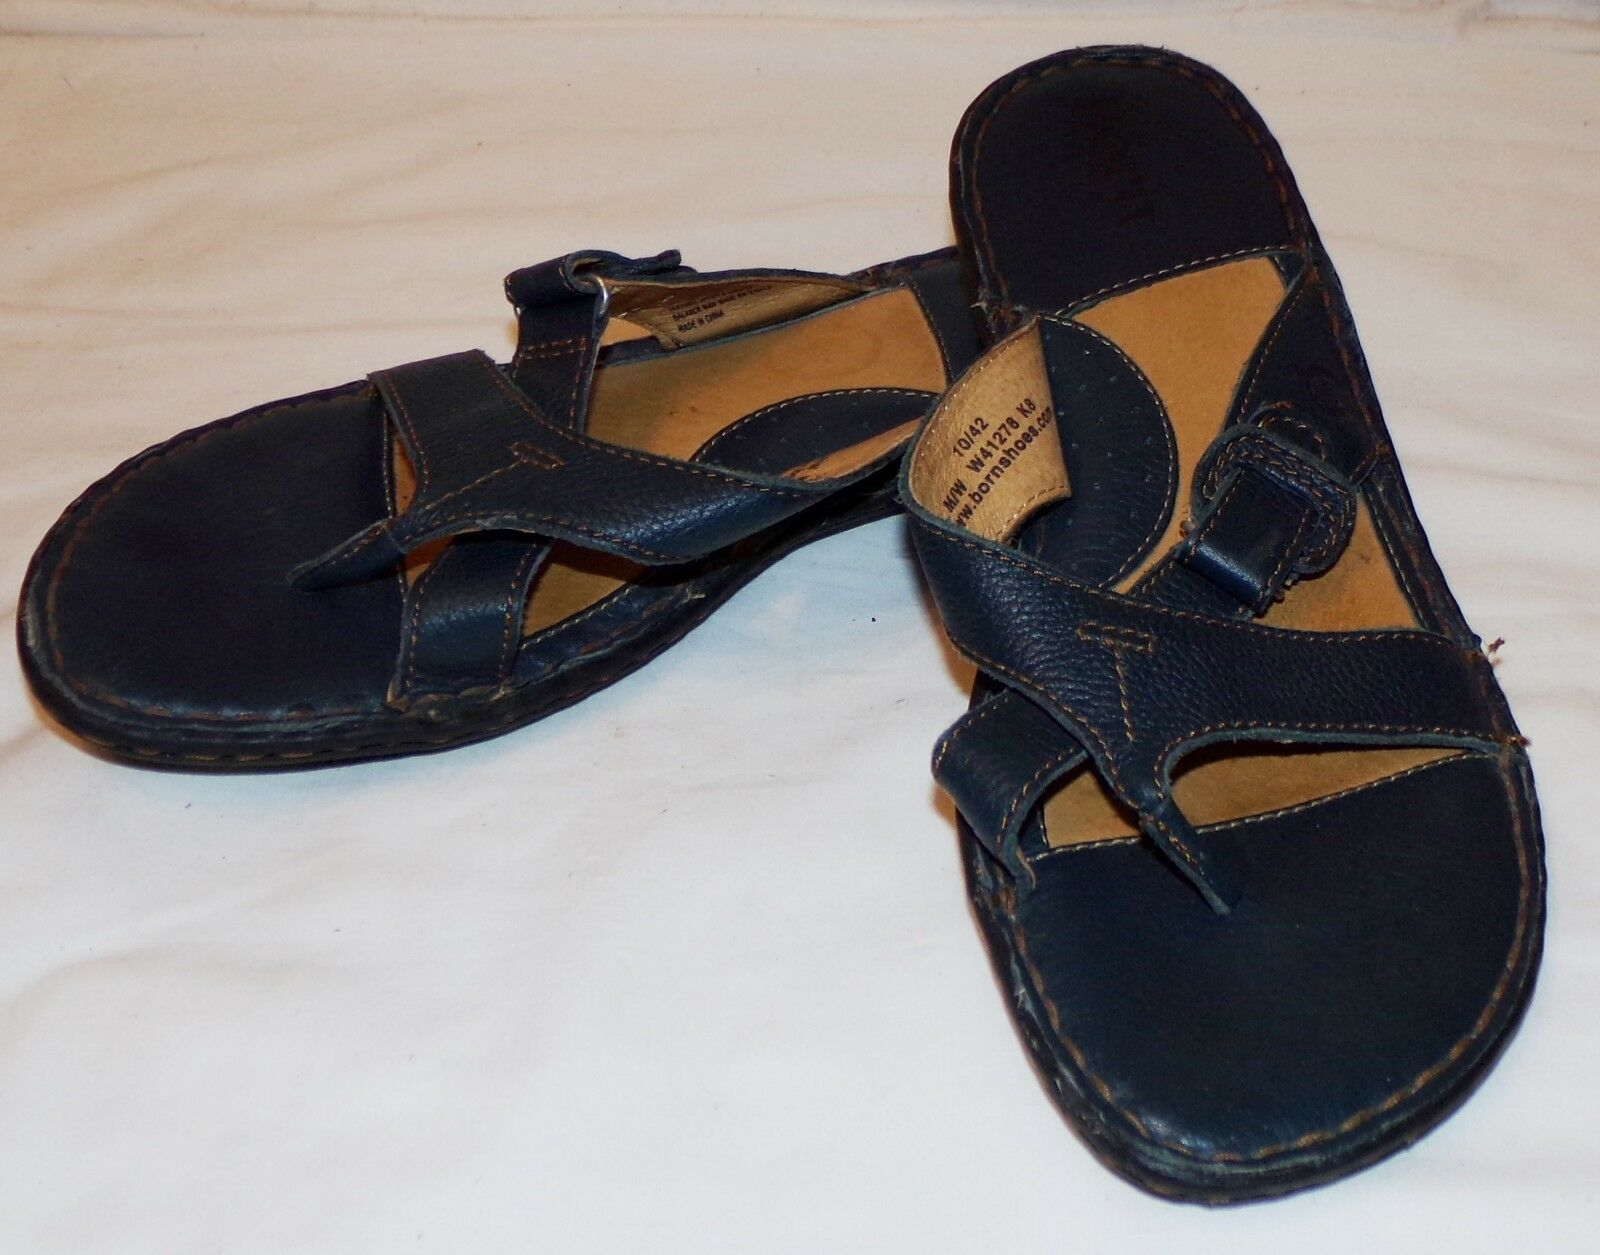 Born Womens Navy bluee Sandals Flats 10 42 Flip Flops Leather shoes